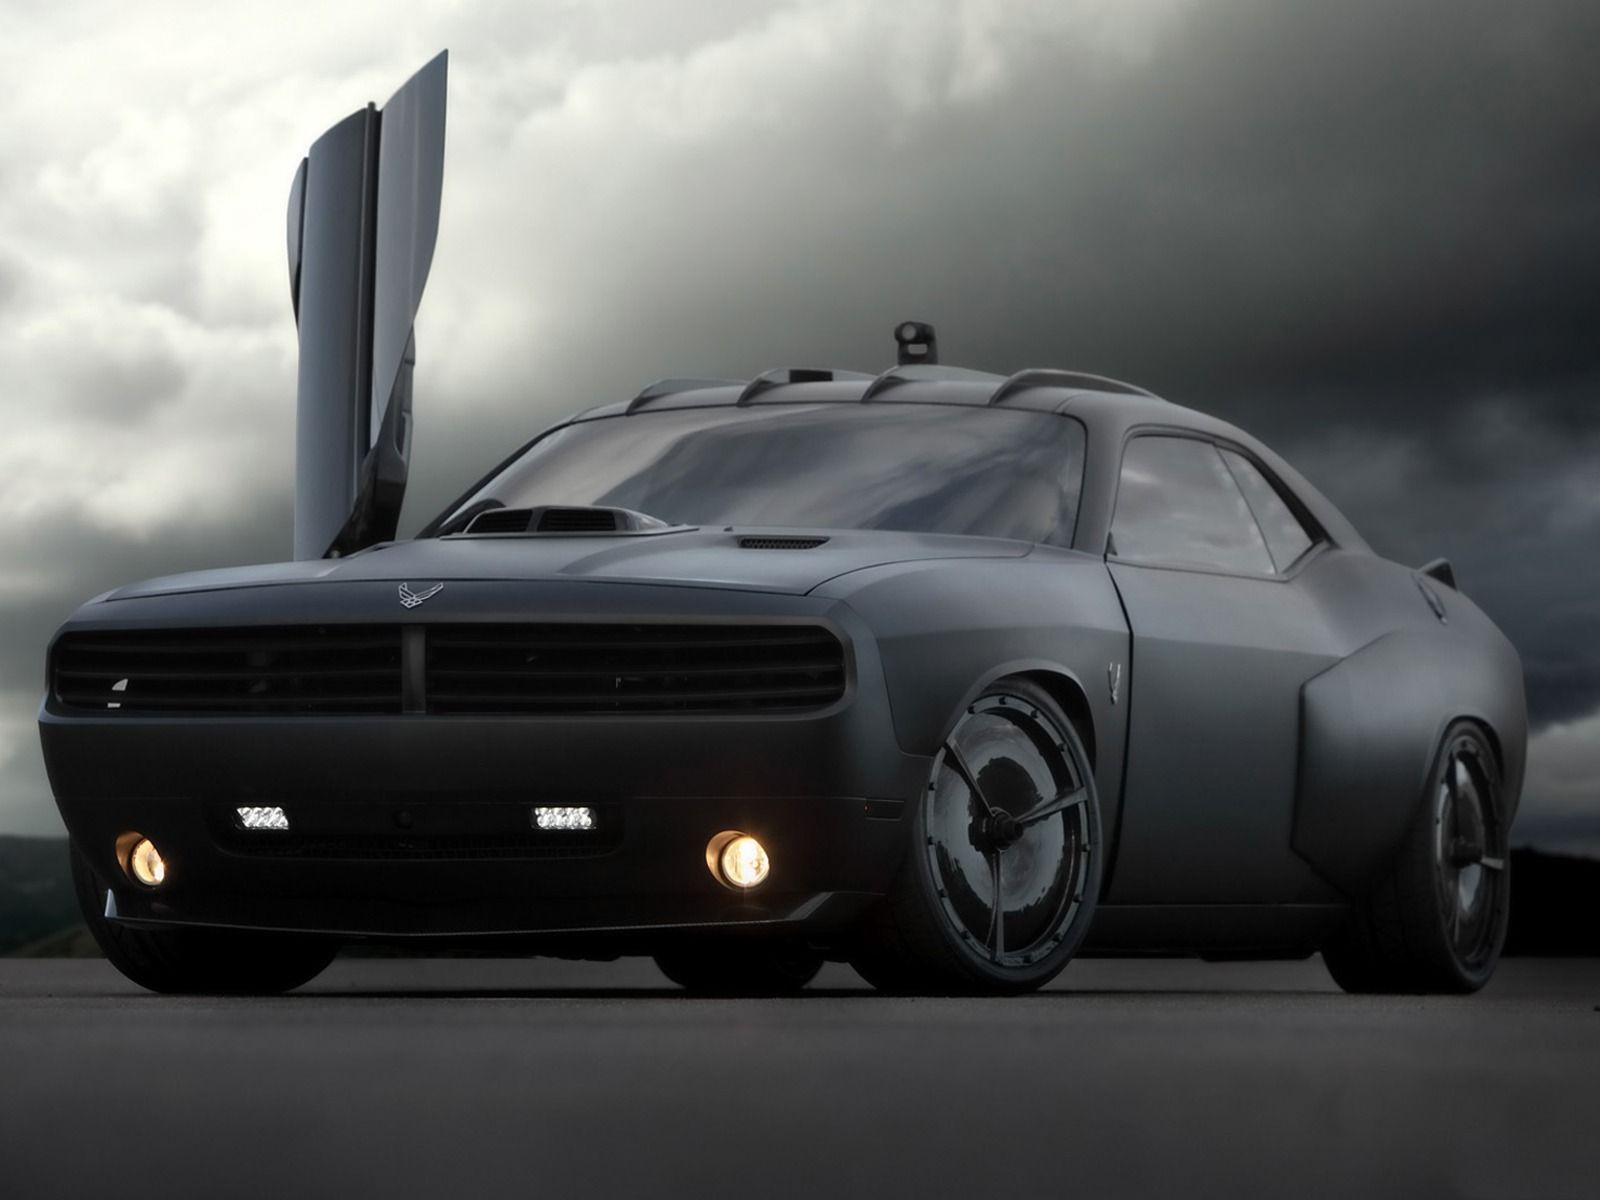 dodge car wallpapers - wallpaper cave